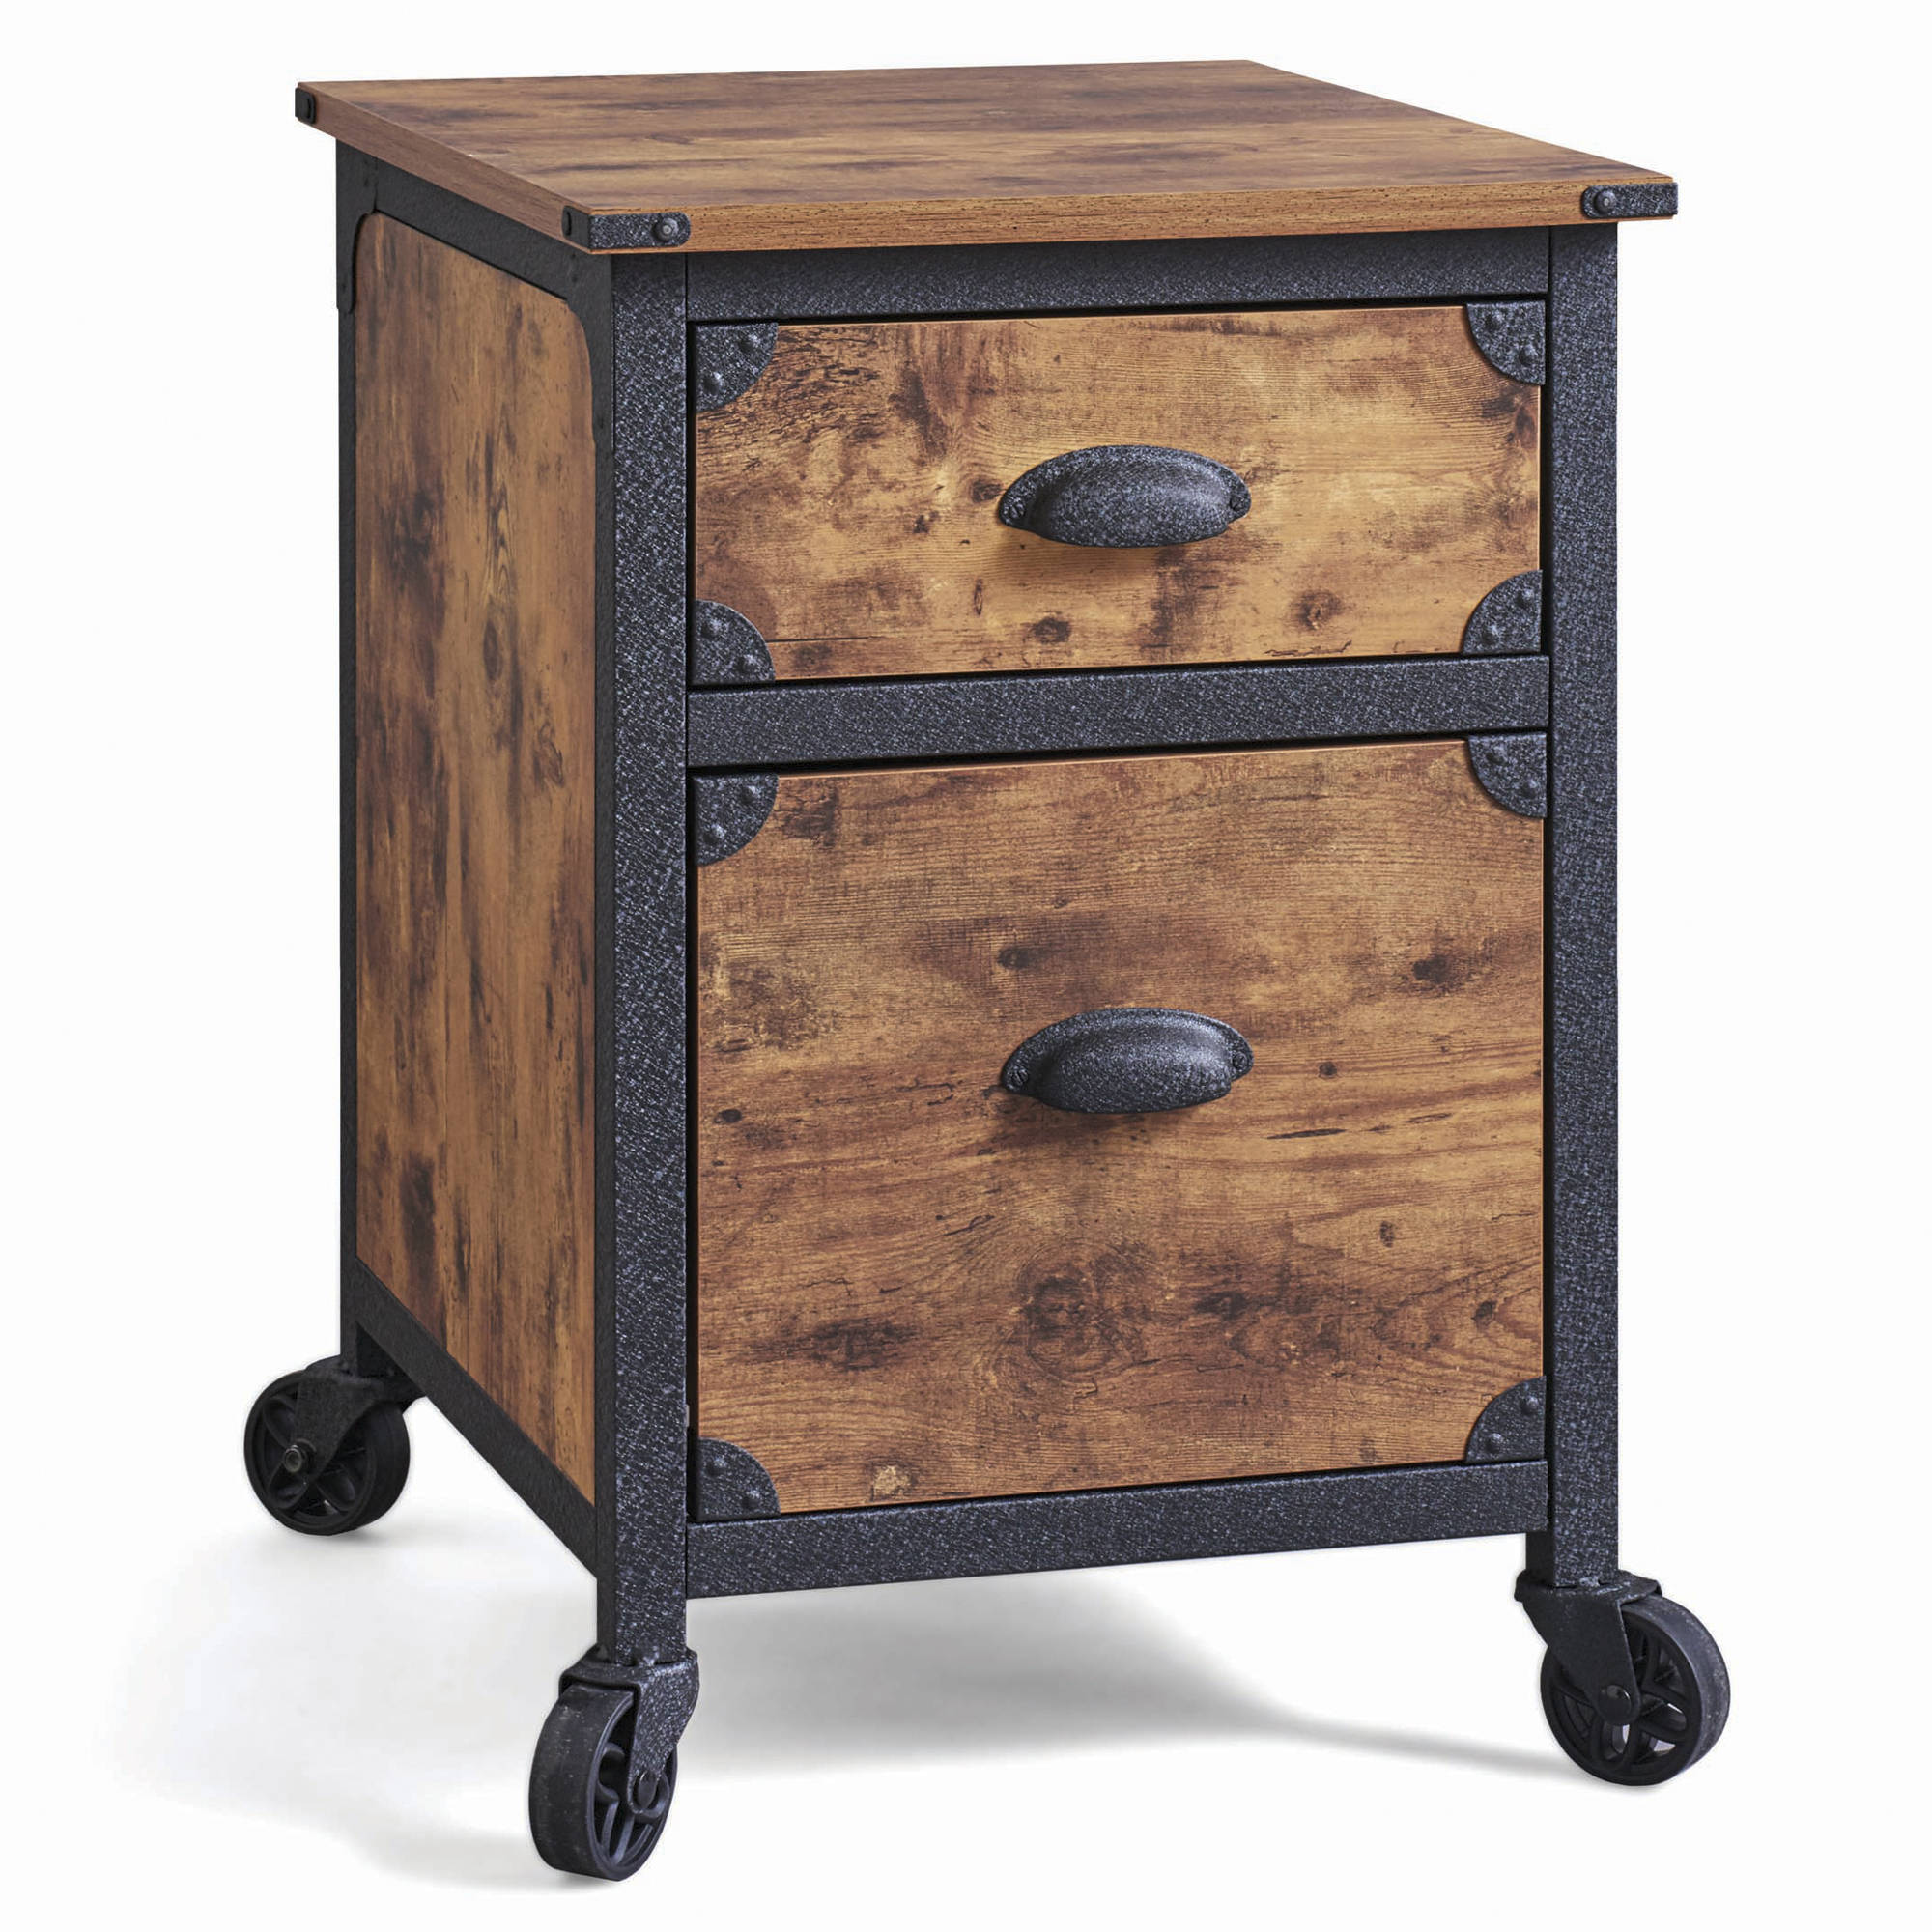 Better Homes Gardens Rustic Country File Cabinet Weathered Pine Finish